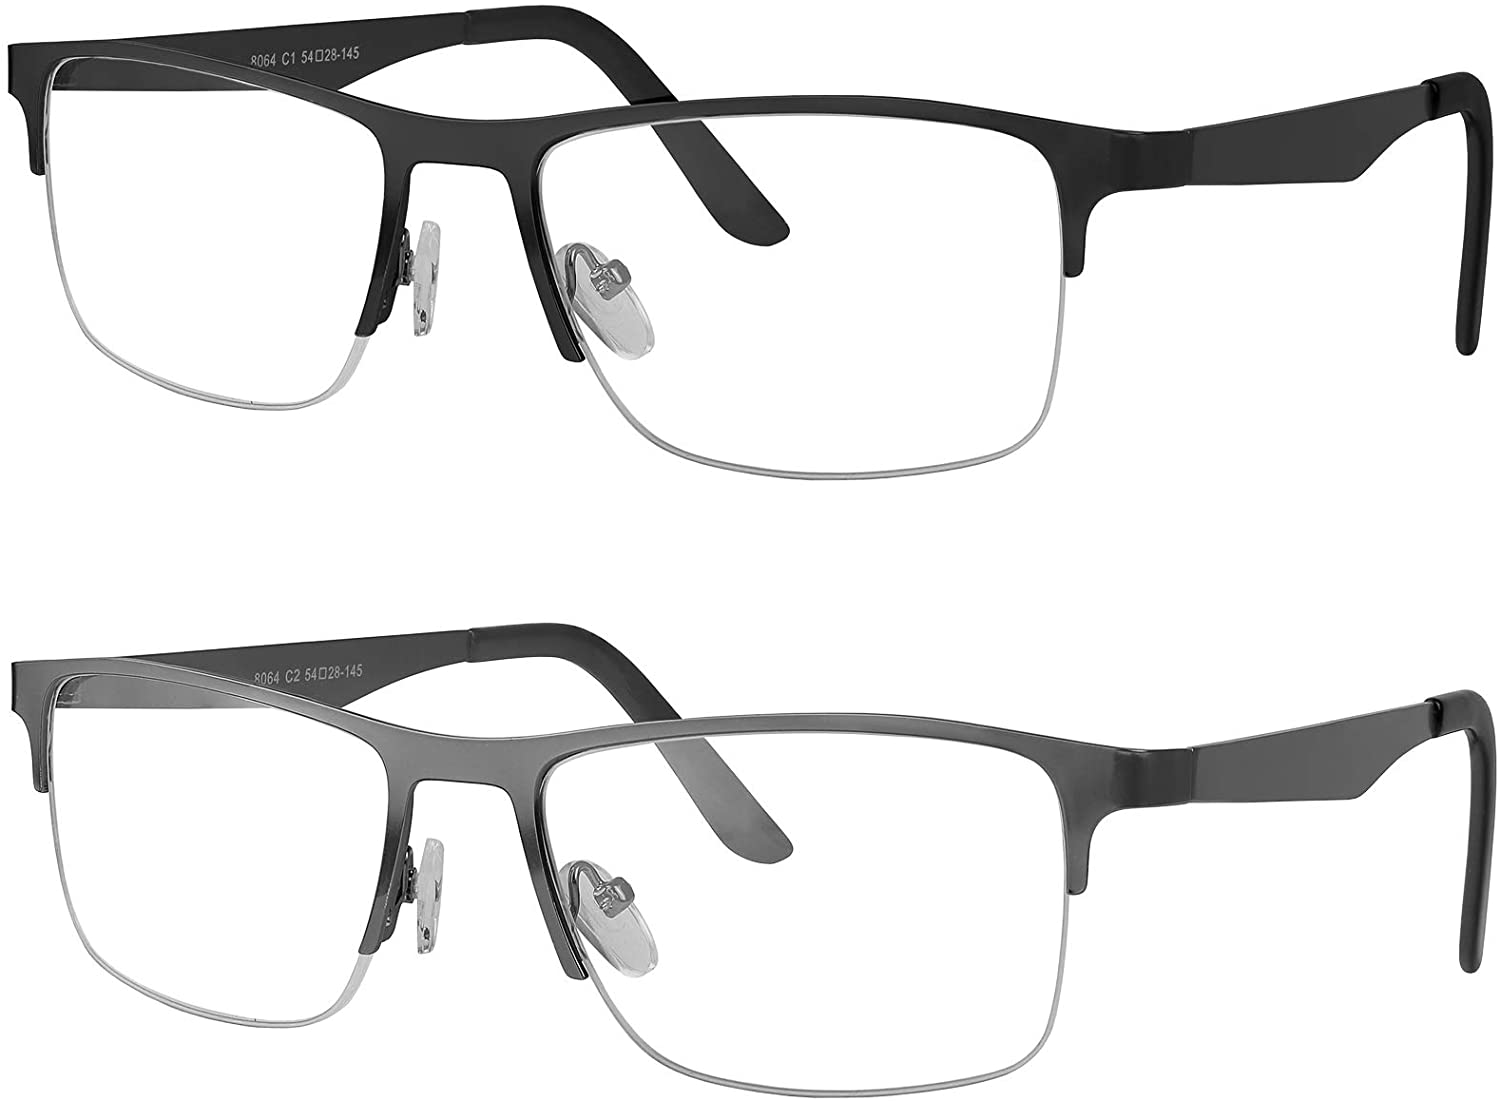 Yogo Vision Blue Light Glasses for Women and Men – Clear Lens Blue Blocker Glasses for Computer Reading and Gaming – Lightweight Metal Frames with Non-Polarized Plastic Lenses (2 Pack)